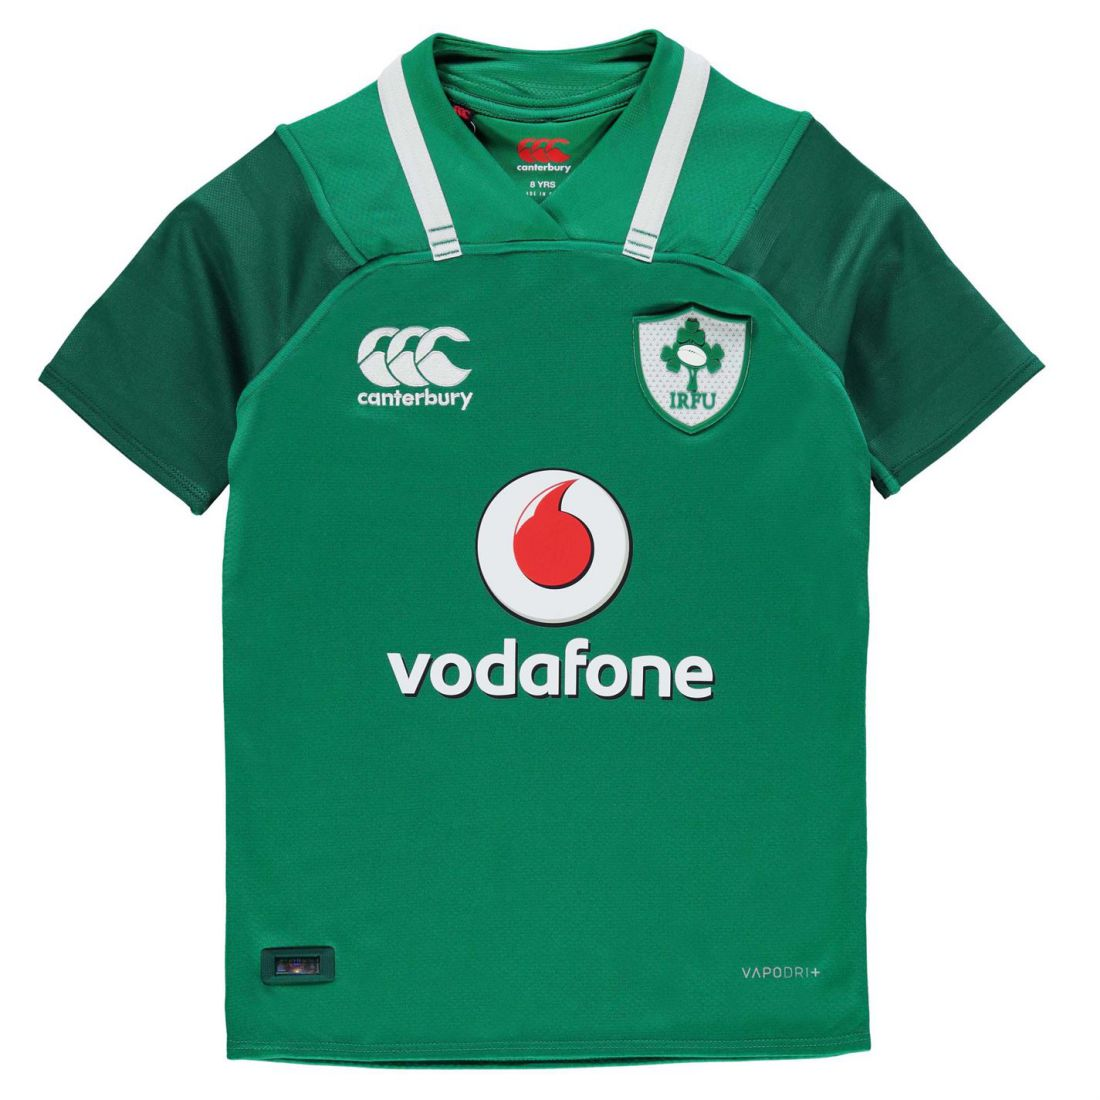 55ae3eeed Image is loading Canterbury-Ireland-Rugby-Home-Pro-Jersey-2017-2018-